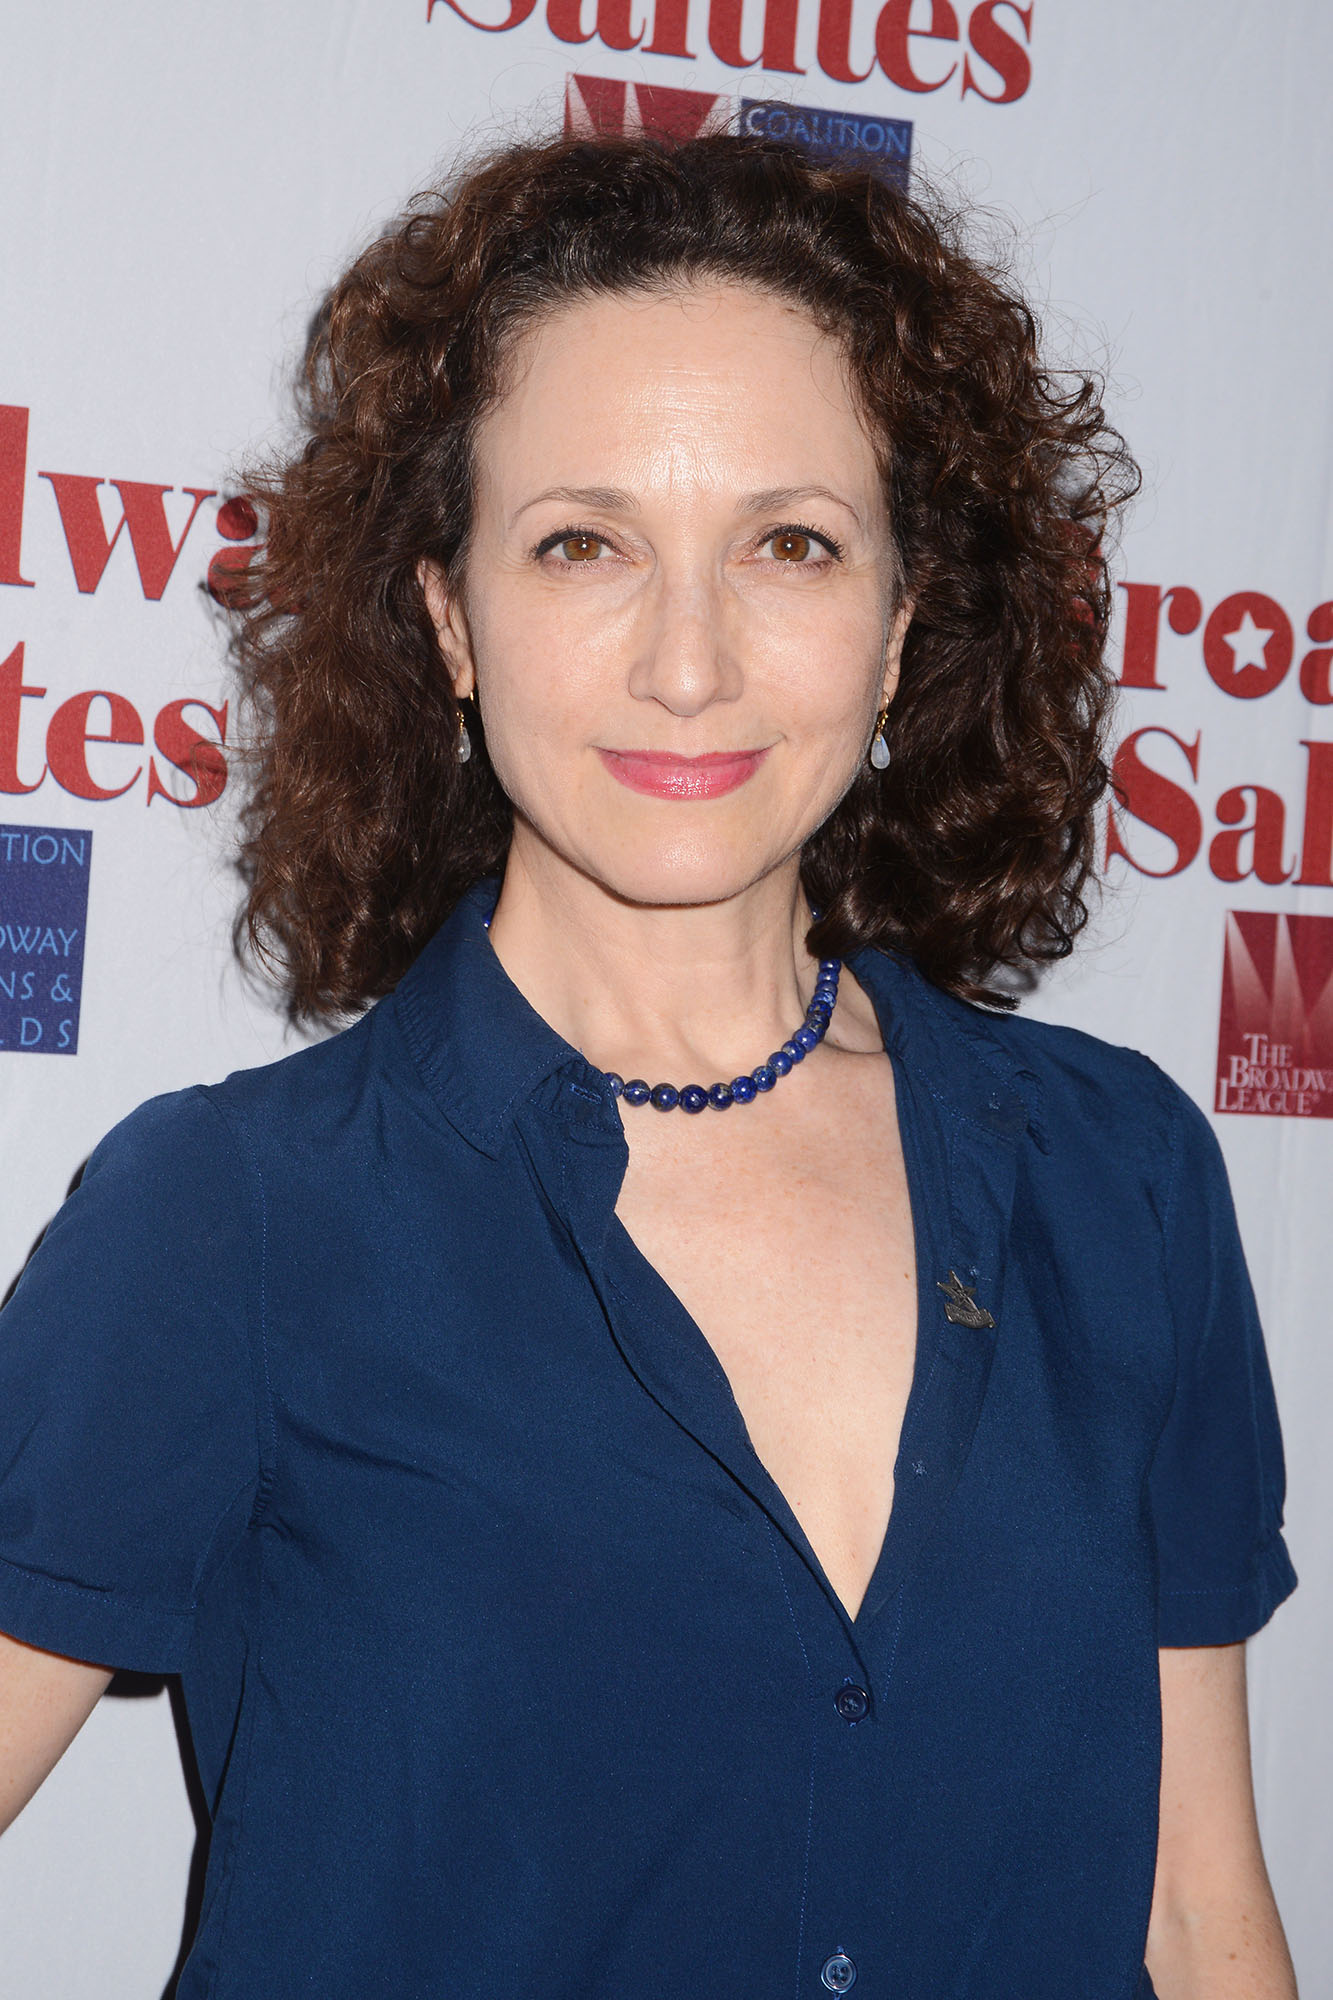 pics Bebe Neuwirth born December 31, 1958 (age 59)